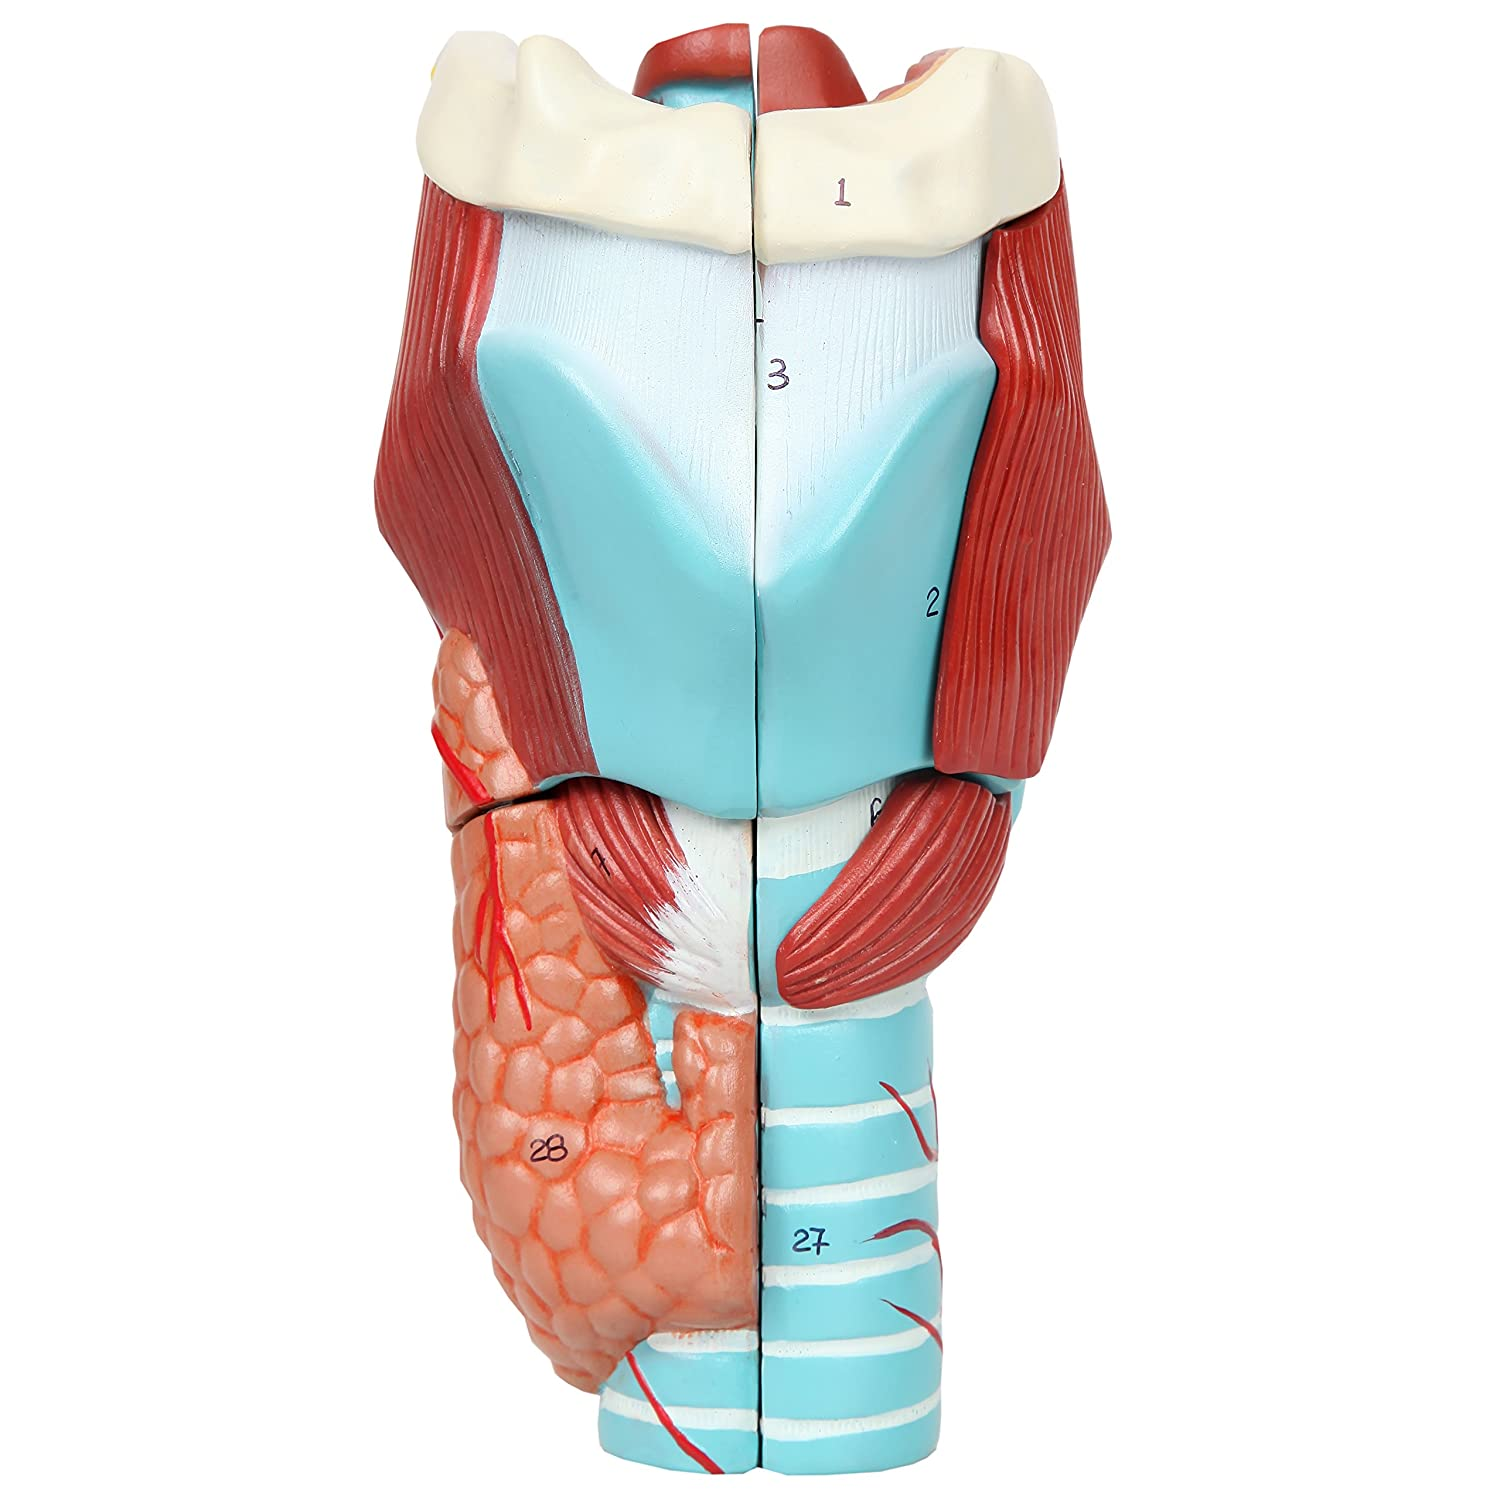 Axis Scientific Anatomy Model of Human Larynx | Model is 9 Inches Tall and 5 Times Life Size | Details Anatomy of Vocal Folds and Dissects Into 5 Parts | Comes with a Study Manual and 3 Year Warranty A-105302